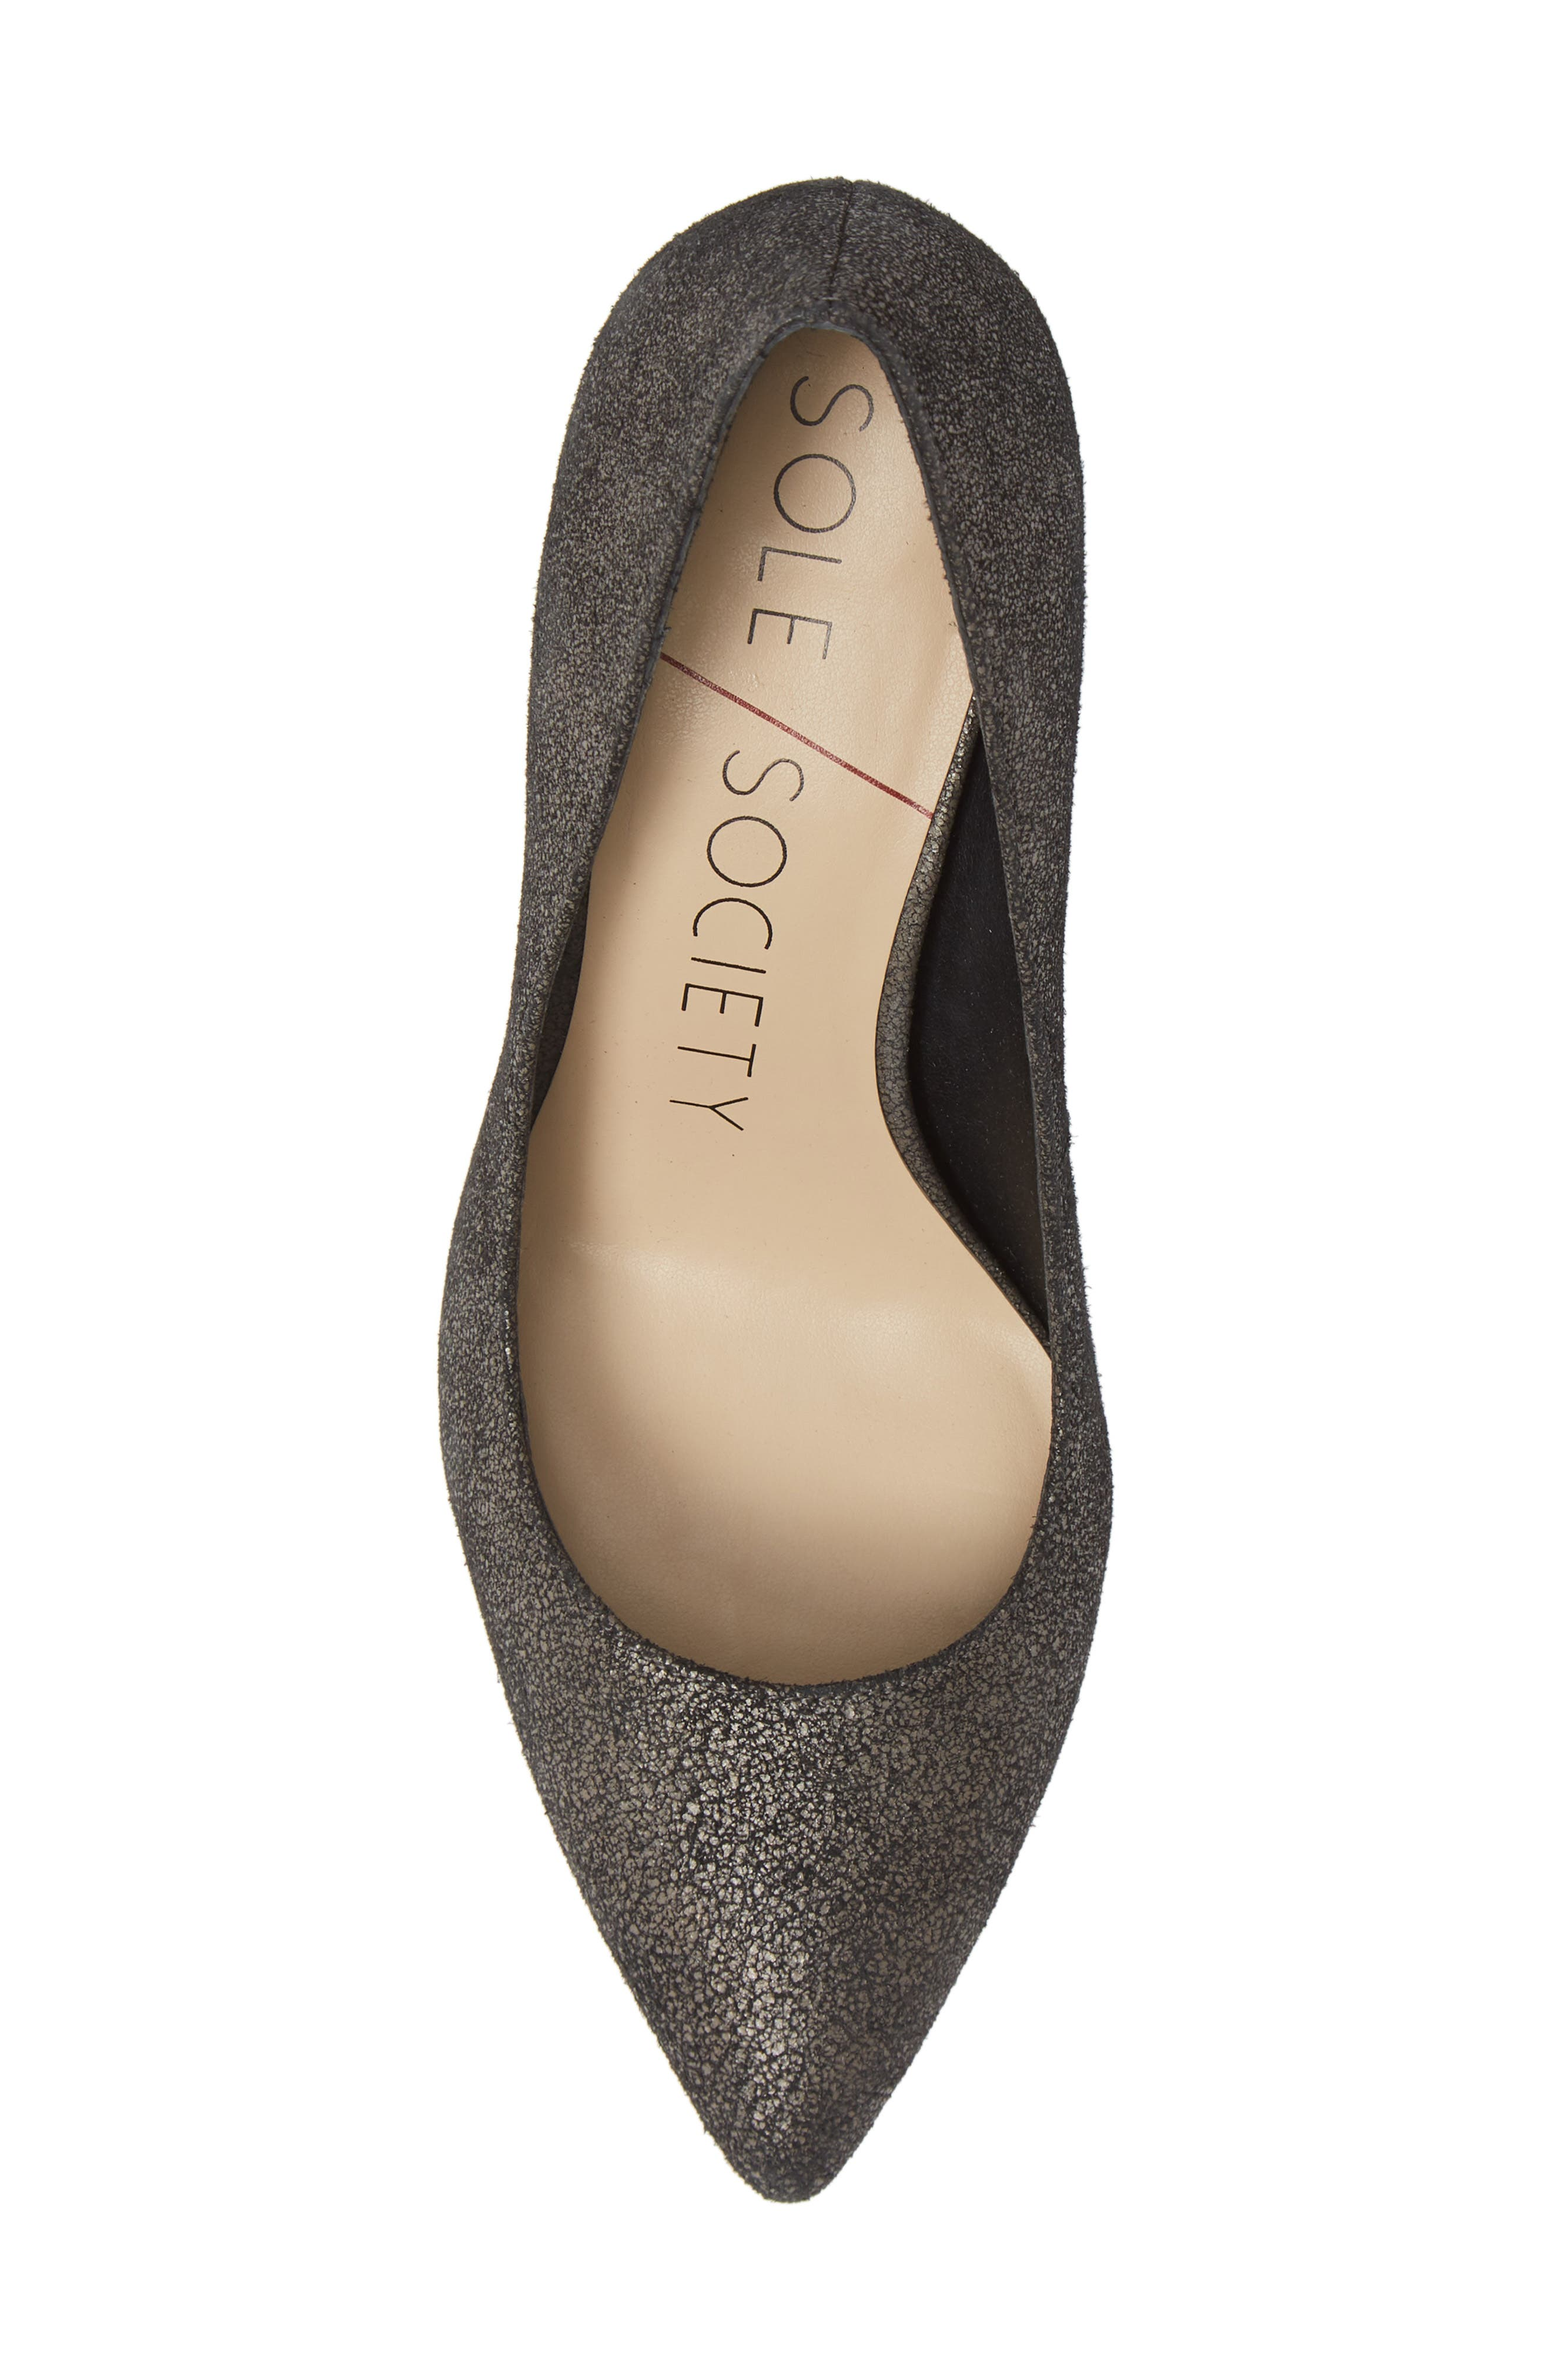 SOLE SOCIETY,                             Twila Pump,                             Alternate thumbnail 5, color,                             DARK CEMENT LEATHER